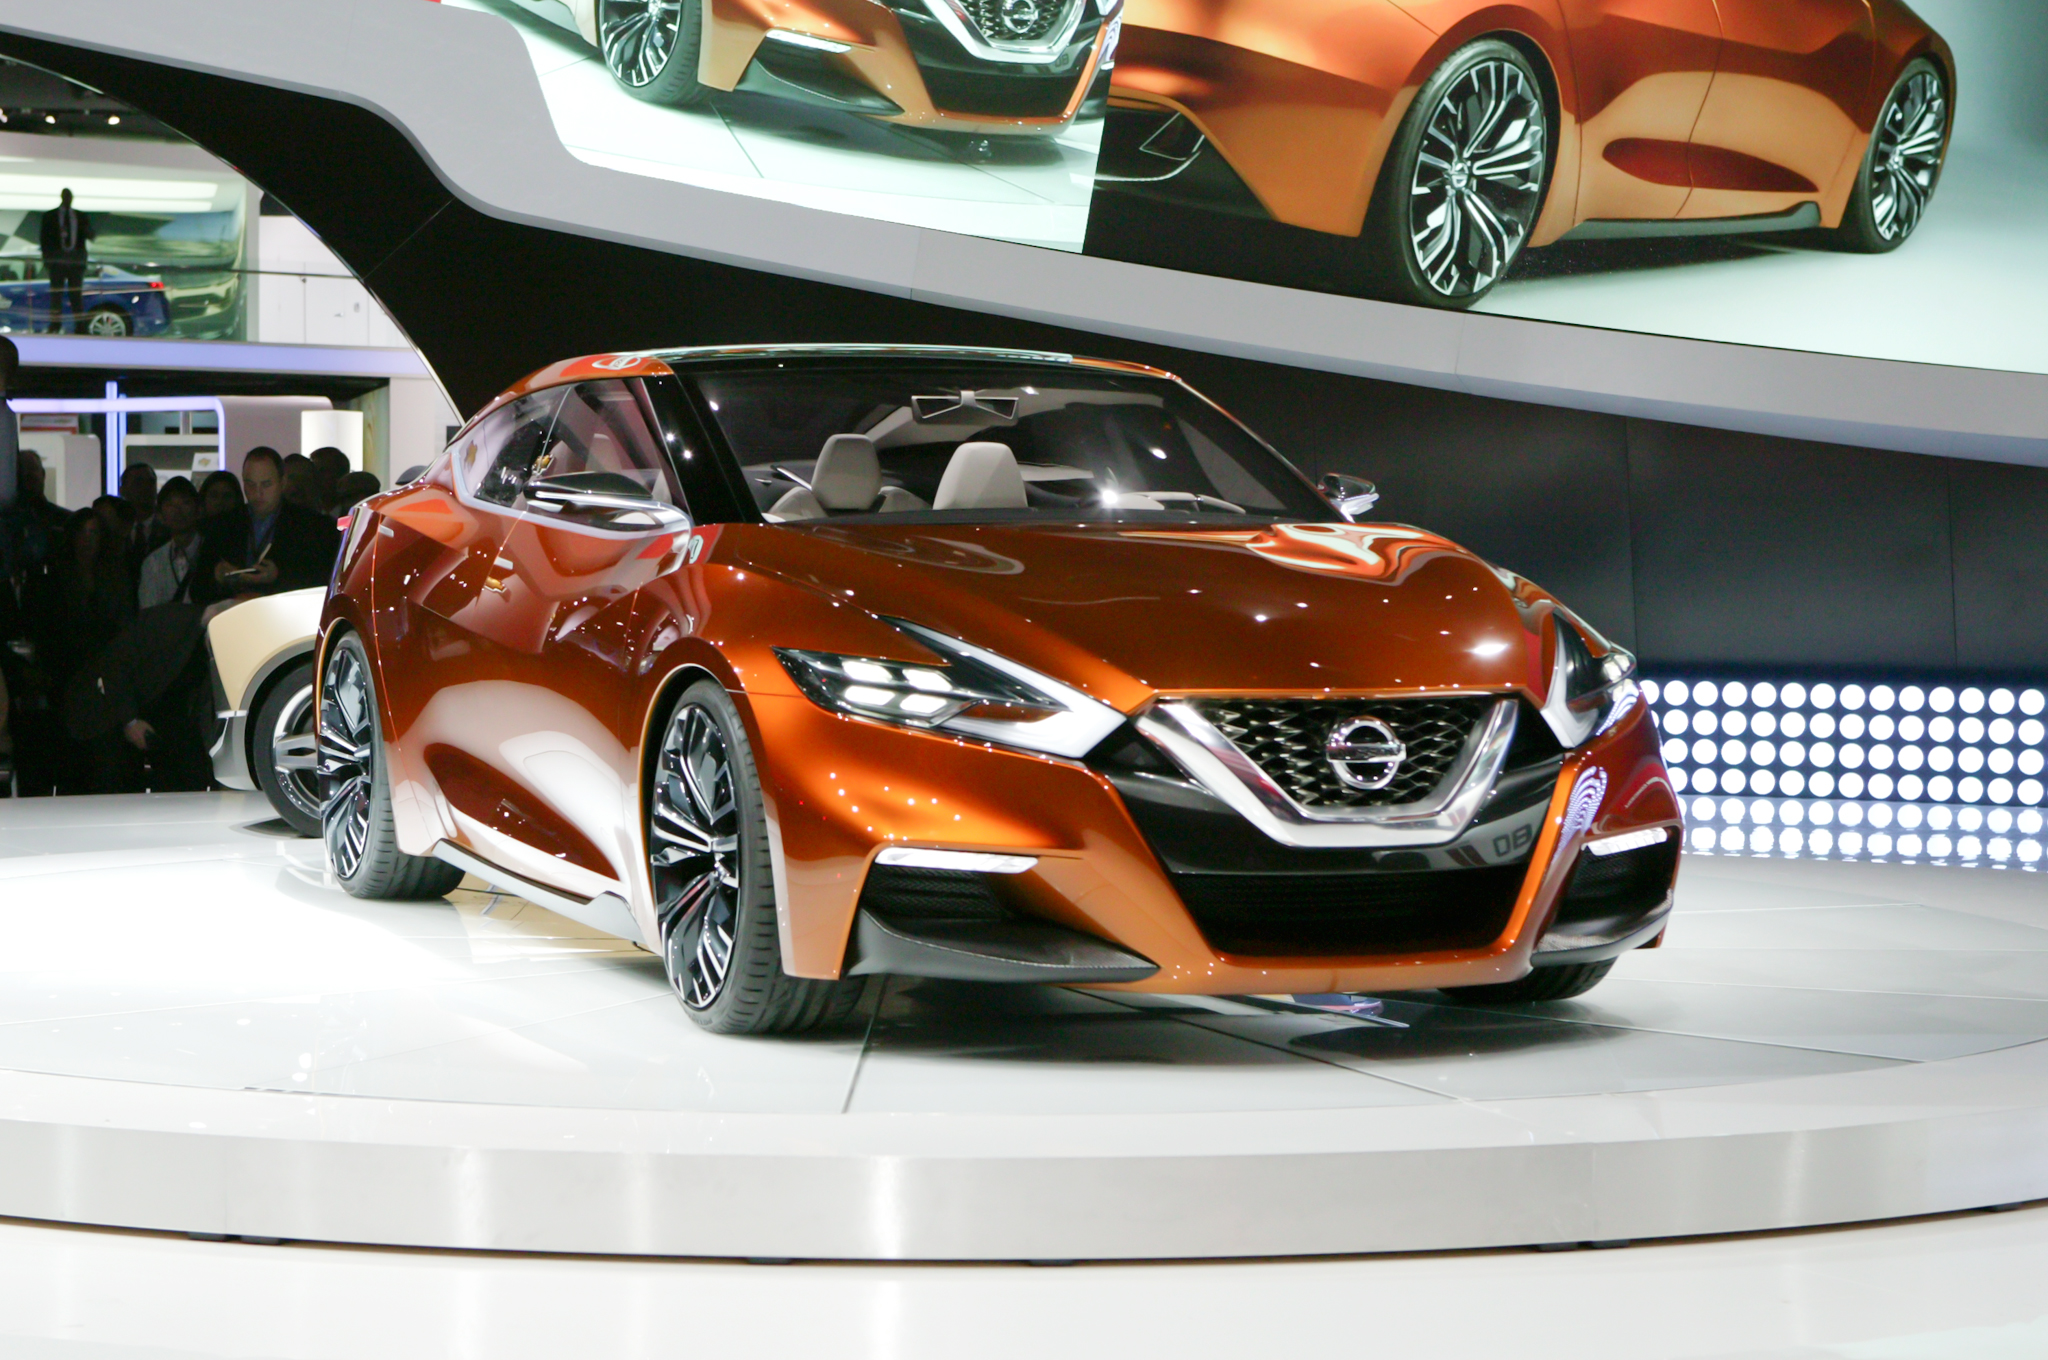 Next Nissan Maxima Previewed As SSC Concept At 2014 Detroit Show